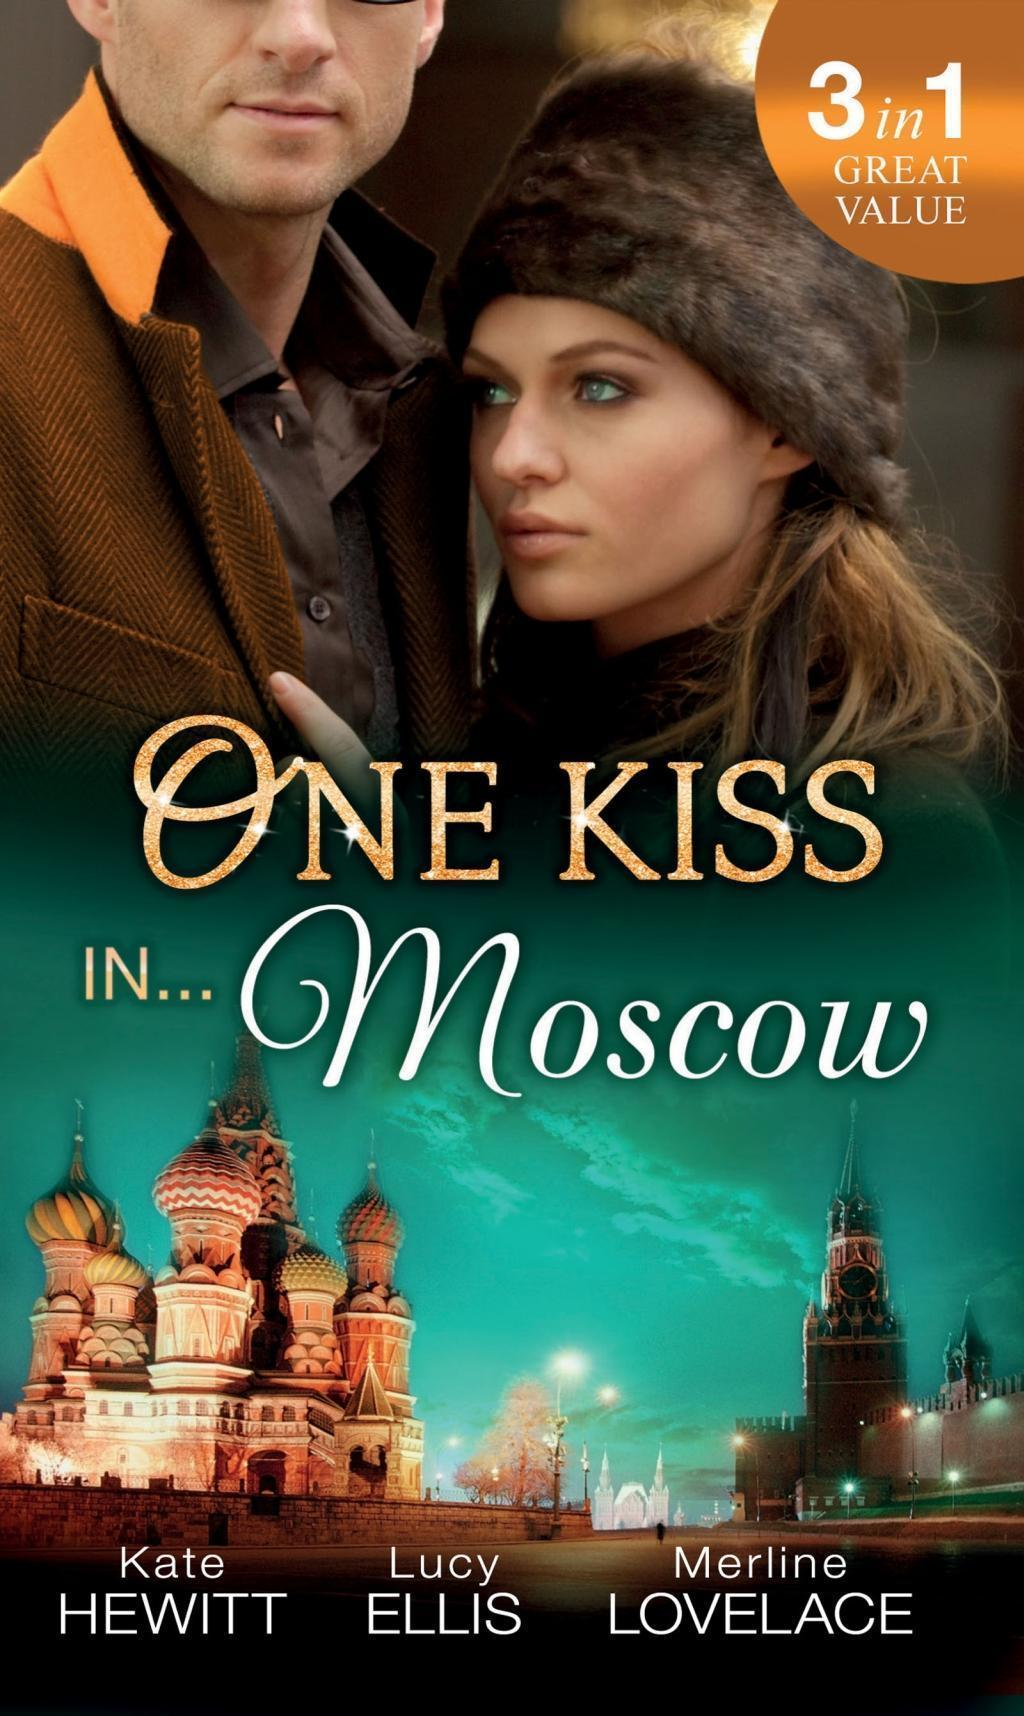 One Kiss in... Moscow: Kholodov's Last Mistress / The Man She Shouldn't Crave / Strangers When We Meet (Mills & Boon M&B)